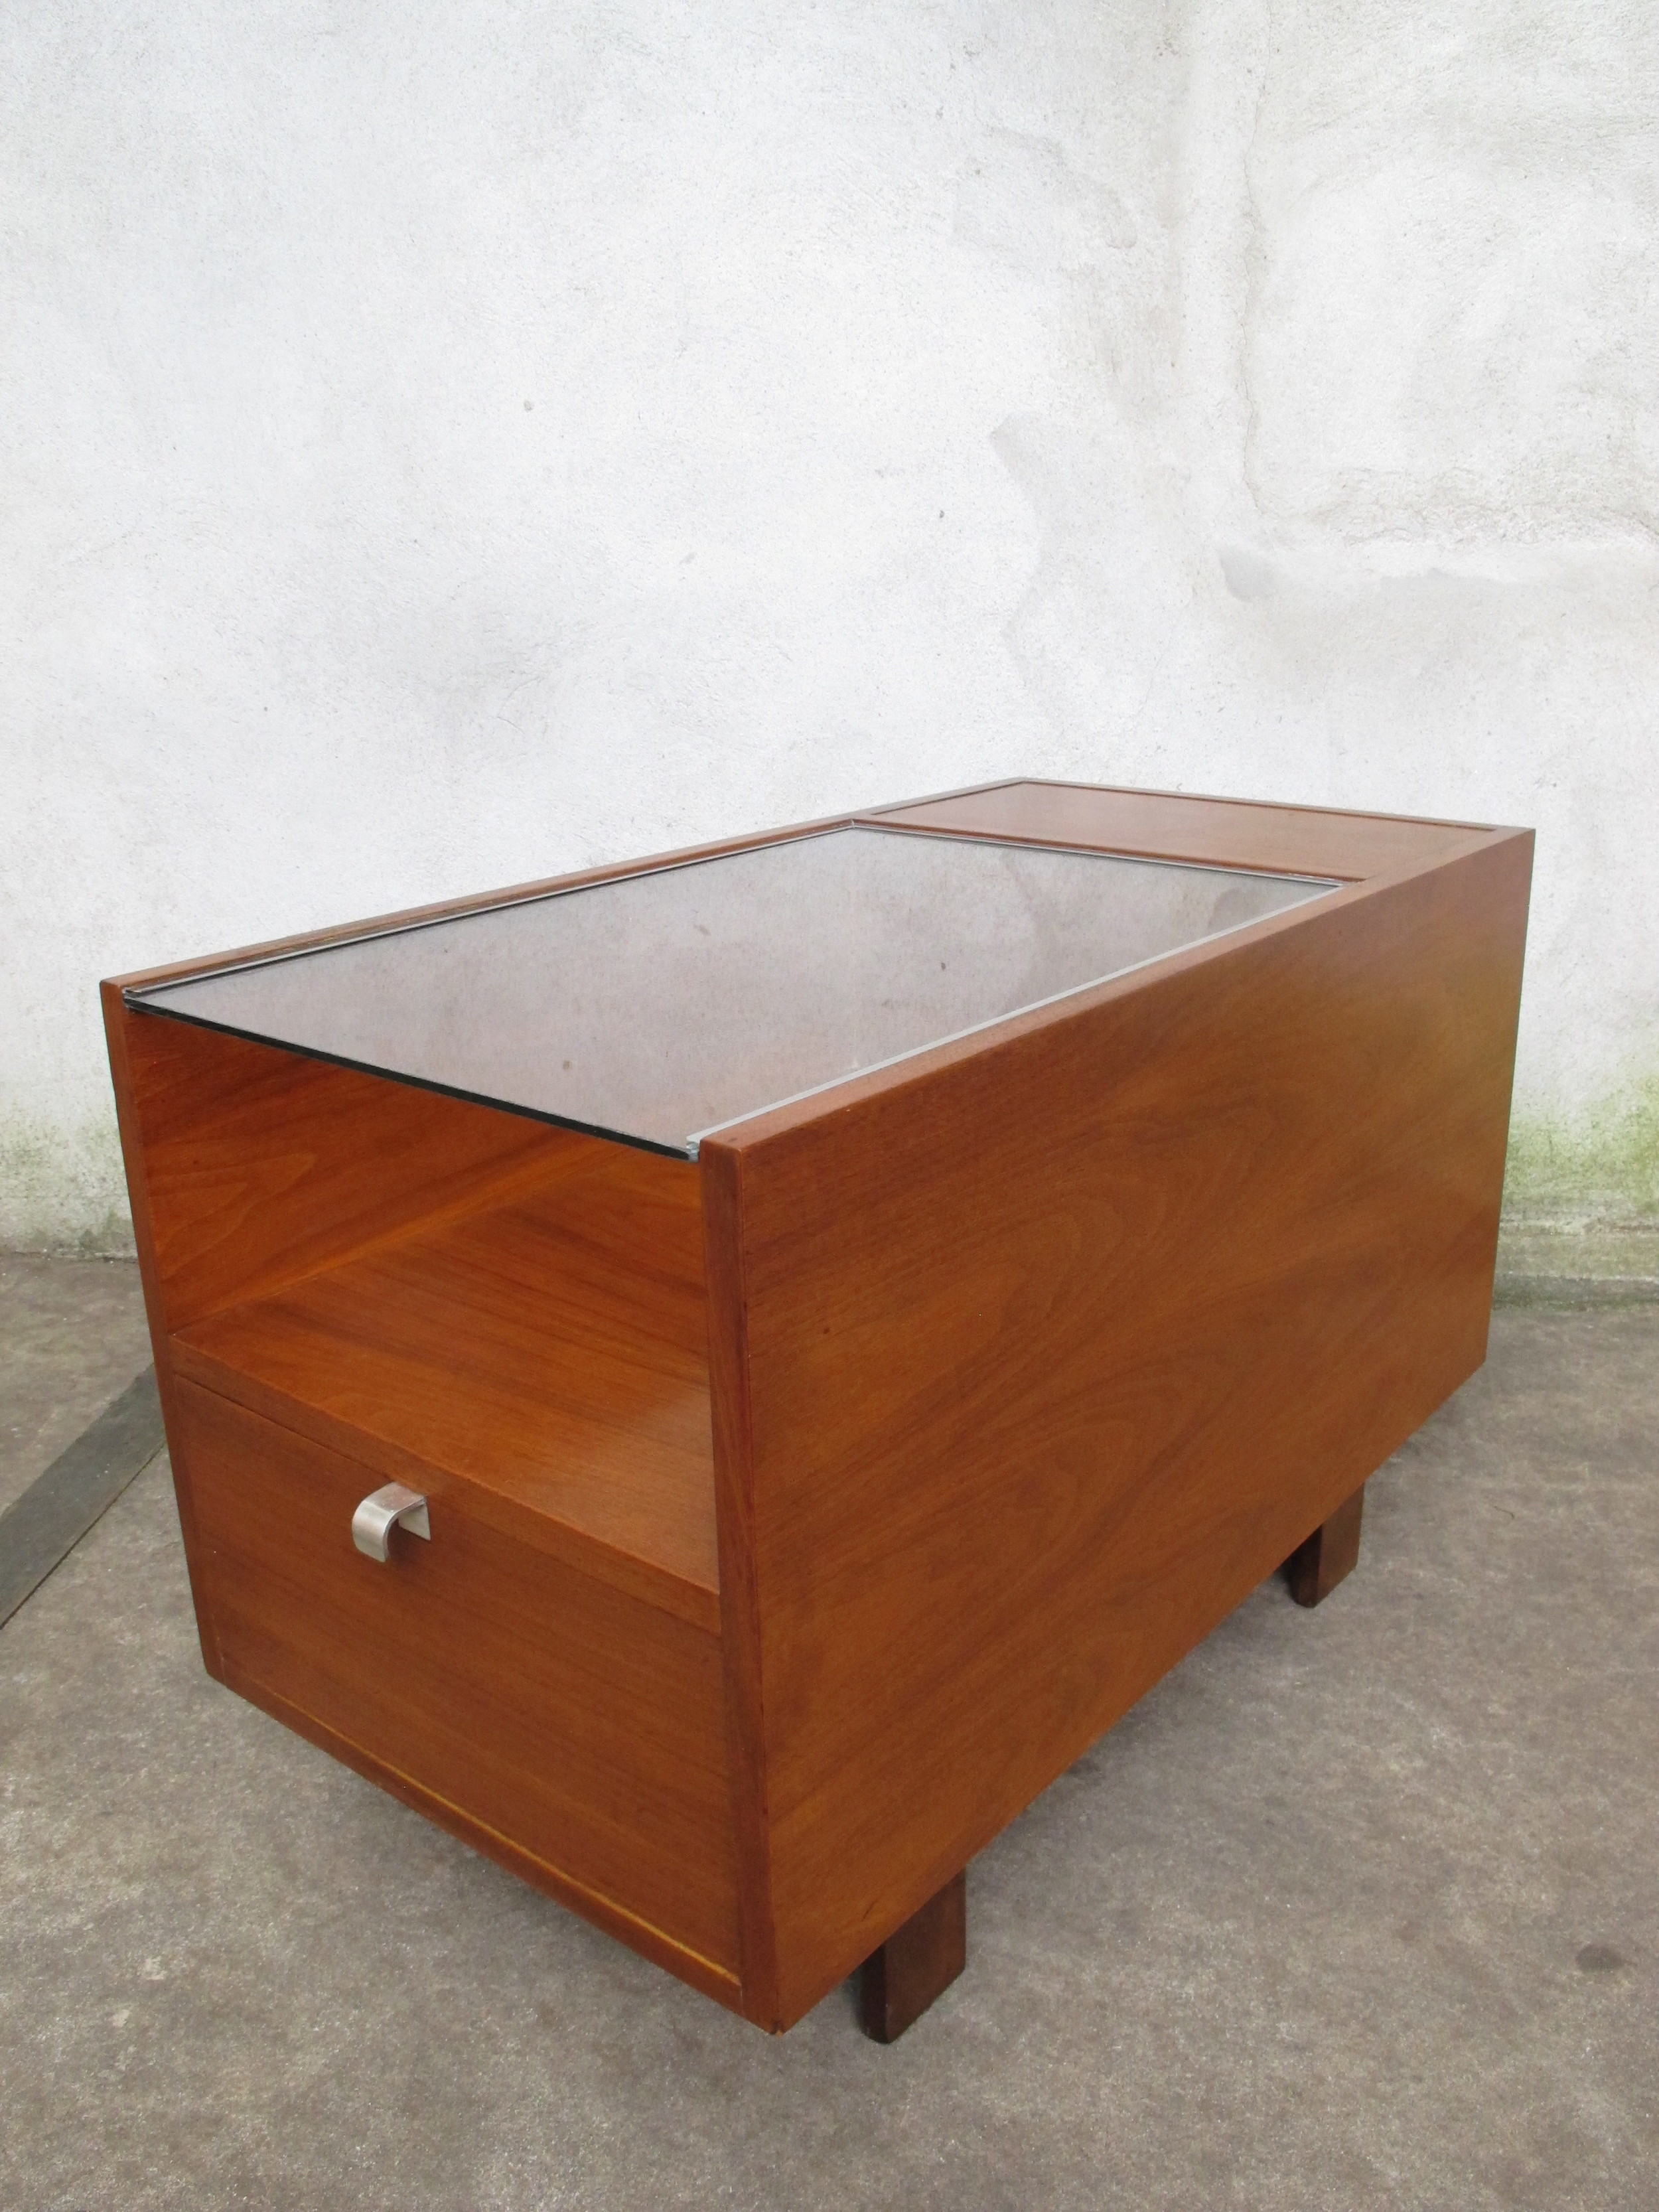 MID CENTURY HERMAN MILLER WALNUT SIDE TABLE BY GEORGE NELSON